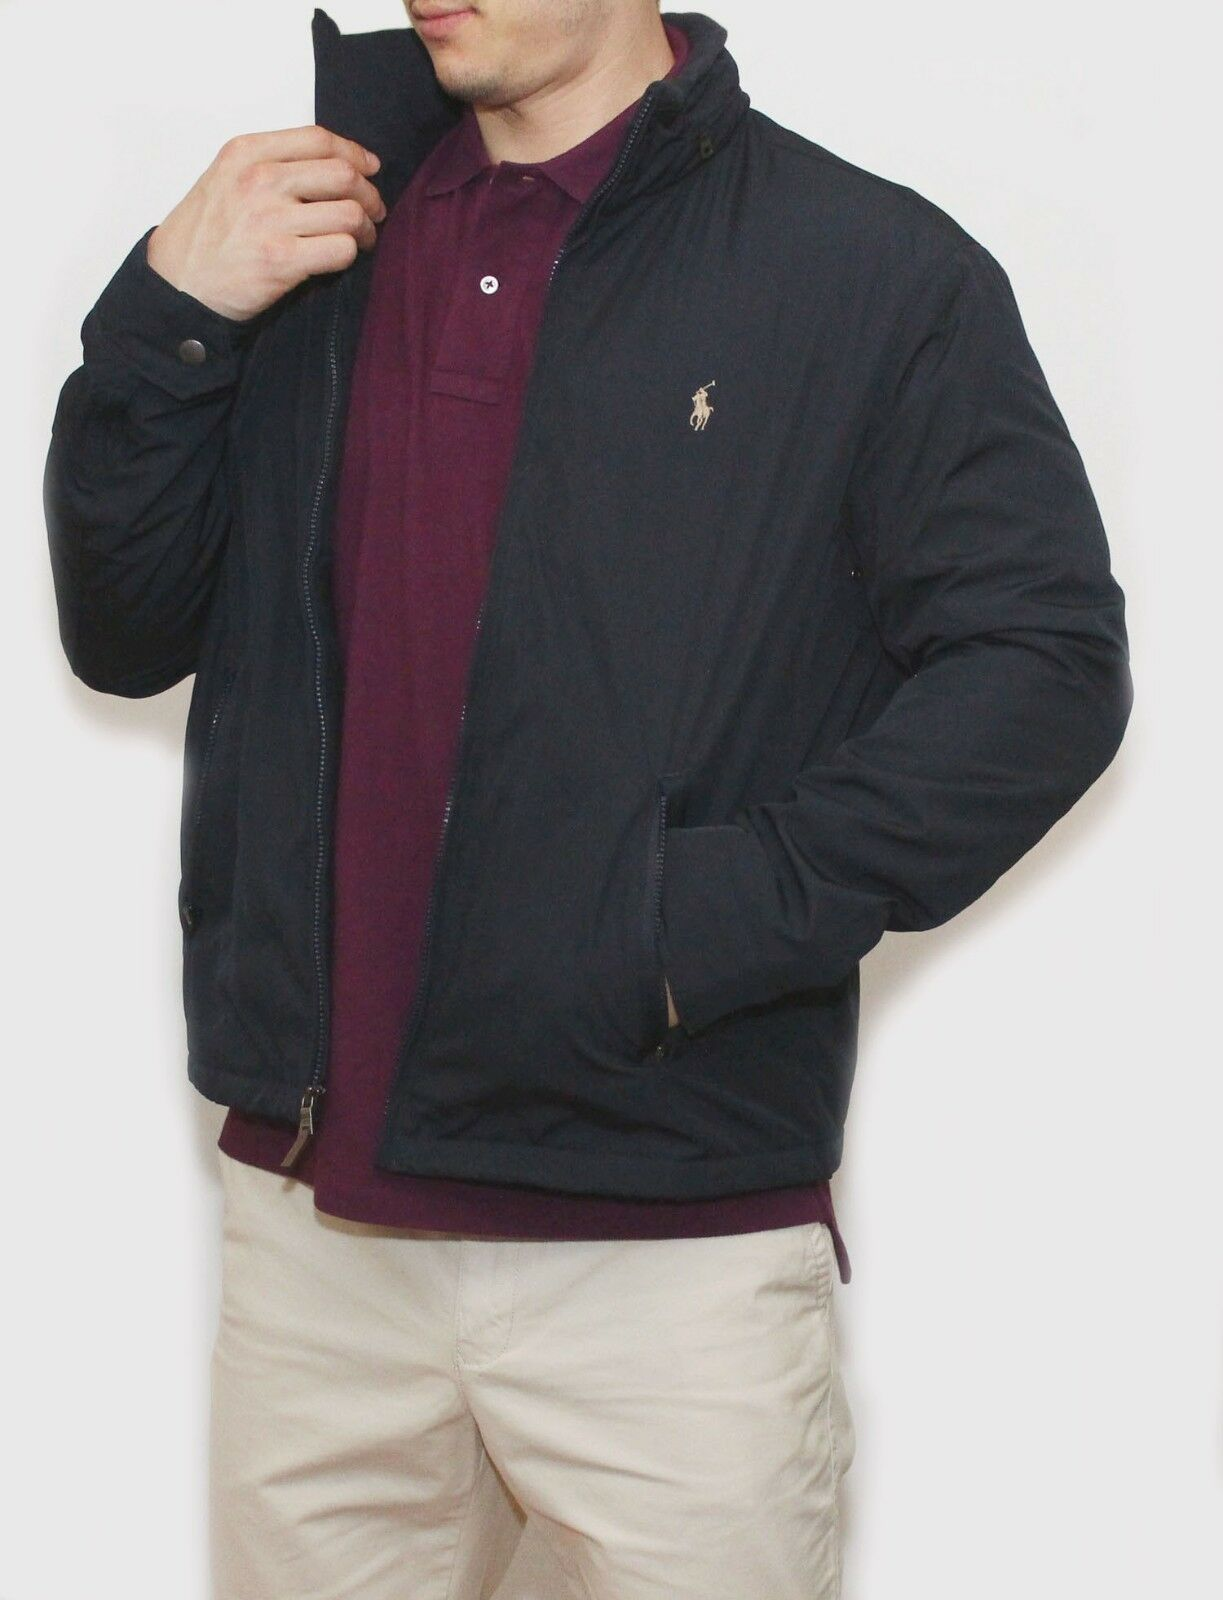 new polo ralph lauren mens pony perry lined jacket fleece. Black Bedroom Furniture Sets. Home Design Ideas